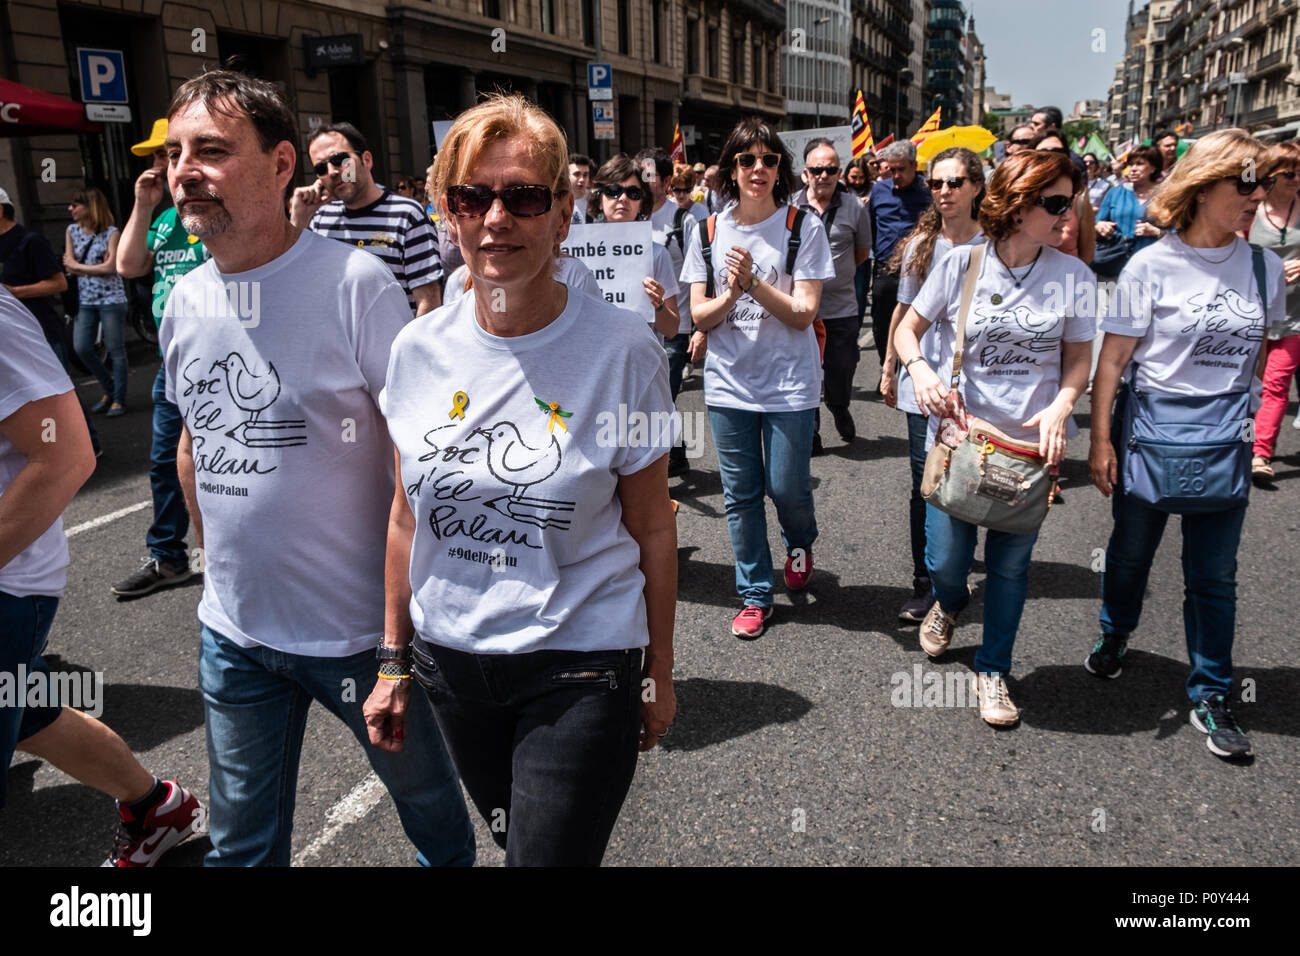 Barcelona, Spain. 10th June 2018. Several demonstrators are seen wearing the shirt in support of the El Palau Institute. Hundreds of people called by the major unions of education have attended the demonstration to defend education and in support of one of the secondary schools that has suffered most from the repression of the Spanish state.Professors of the Palau Institute have been accused and prosecuted for 'indoctrination' for defending the right to vote on October 1. Credit: SOPA Images Limited/Alamy Live News - Stock Image